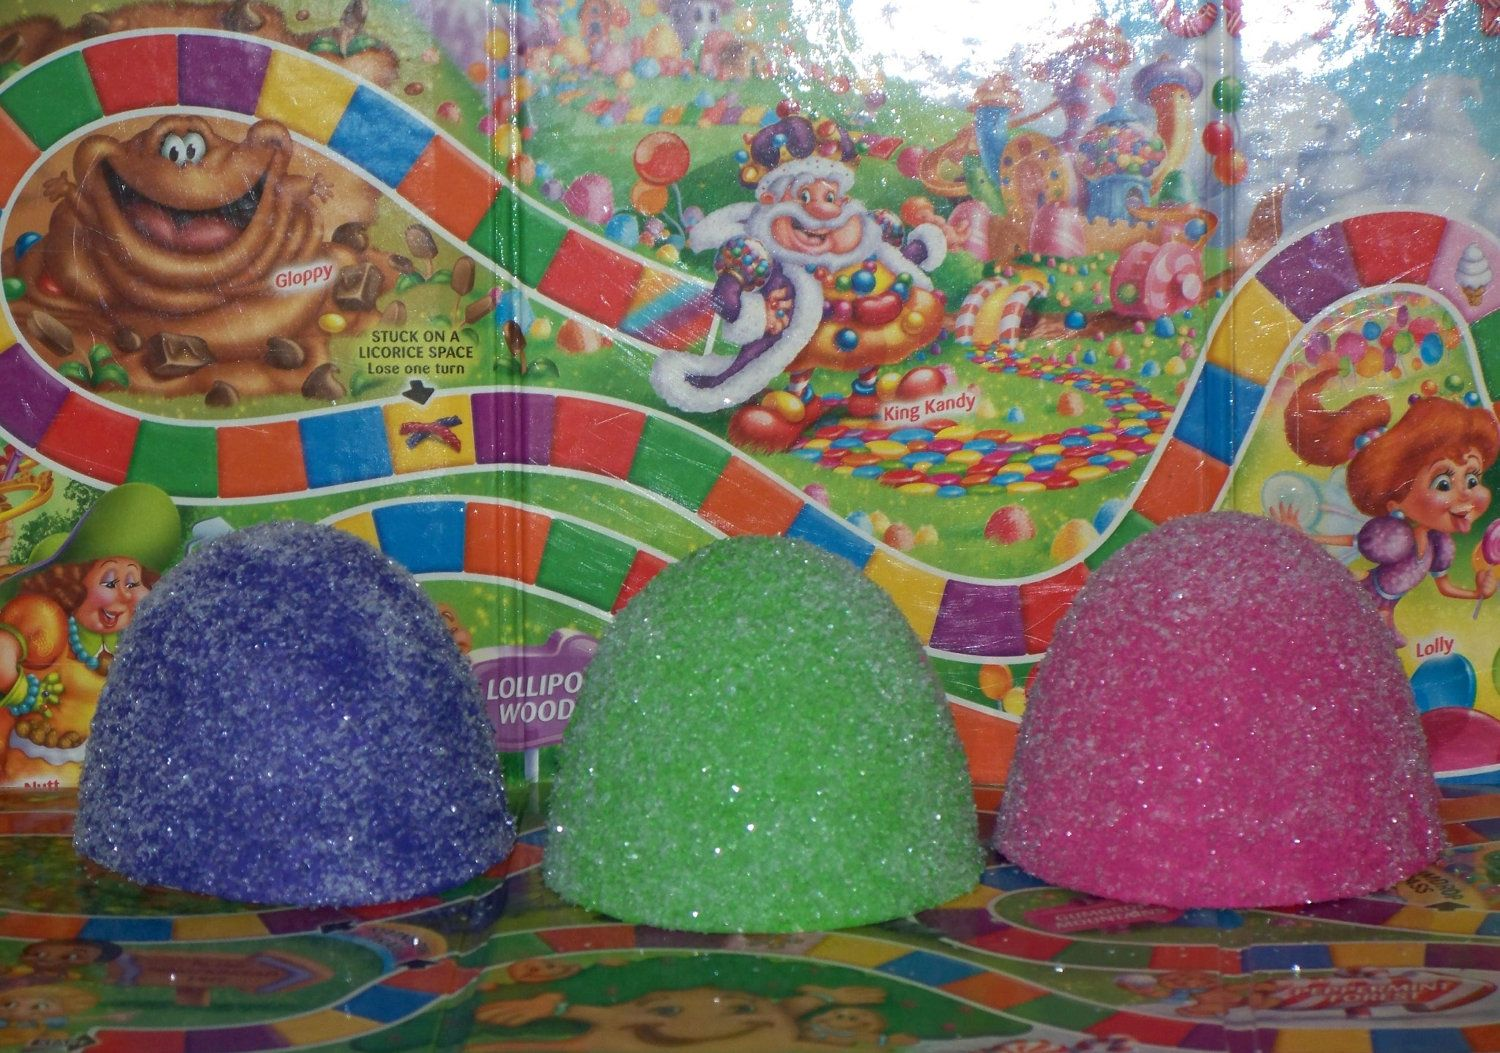 Awesome Candyland Party Decorations 10 How To Make Fake Gumdrop Decorations Candy Land Birthday Party Candyland Birthday Candyland Party Decorations